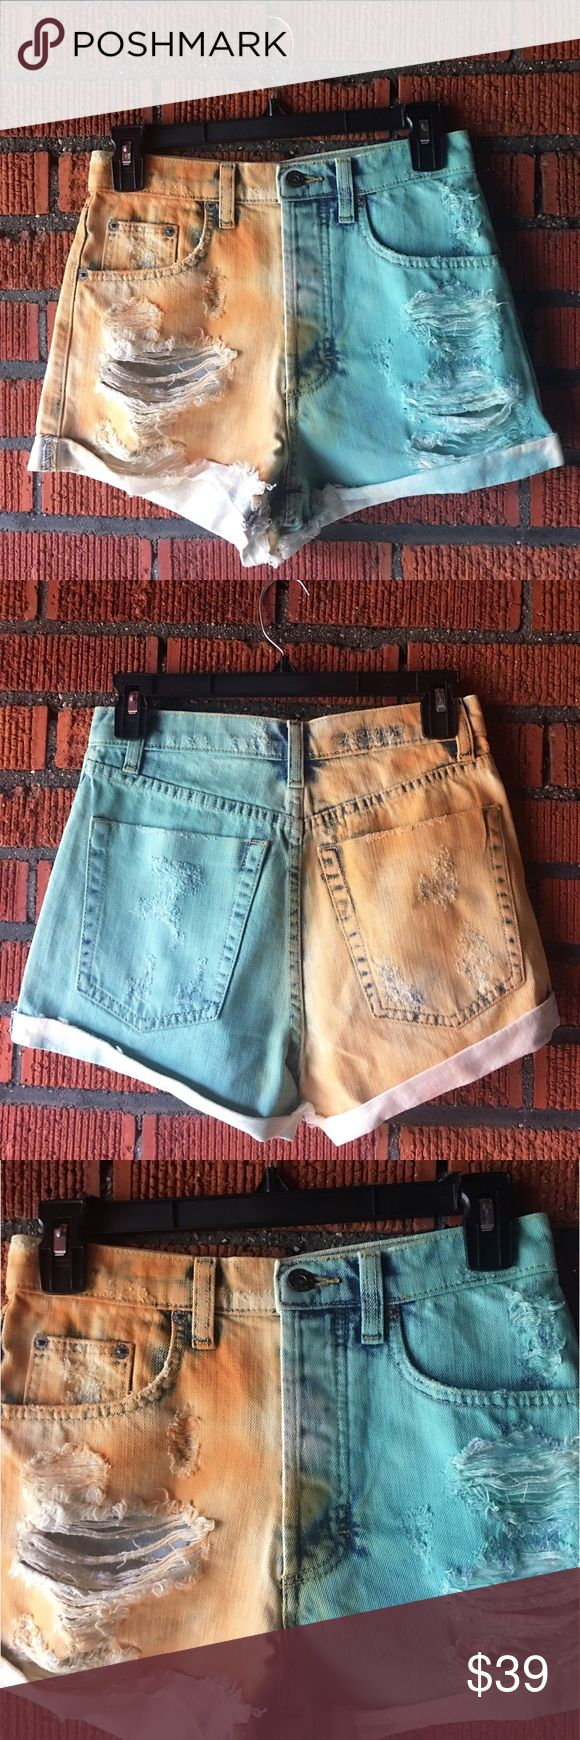 LF CARMAR high waist Denim cut off Jean shorts new CARMAR High Waist Cut Offs from LF Stores $217 retail price brand new with tag! DETAILS: Super cute two toned distressed cuffed cut off Jean shorts. Button fly. Fits true to size. Carmar Shorts Jean Shorts